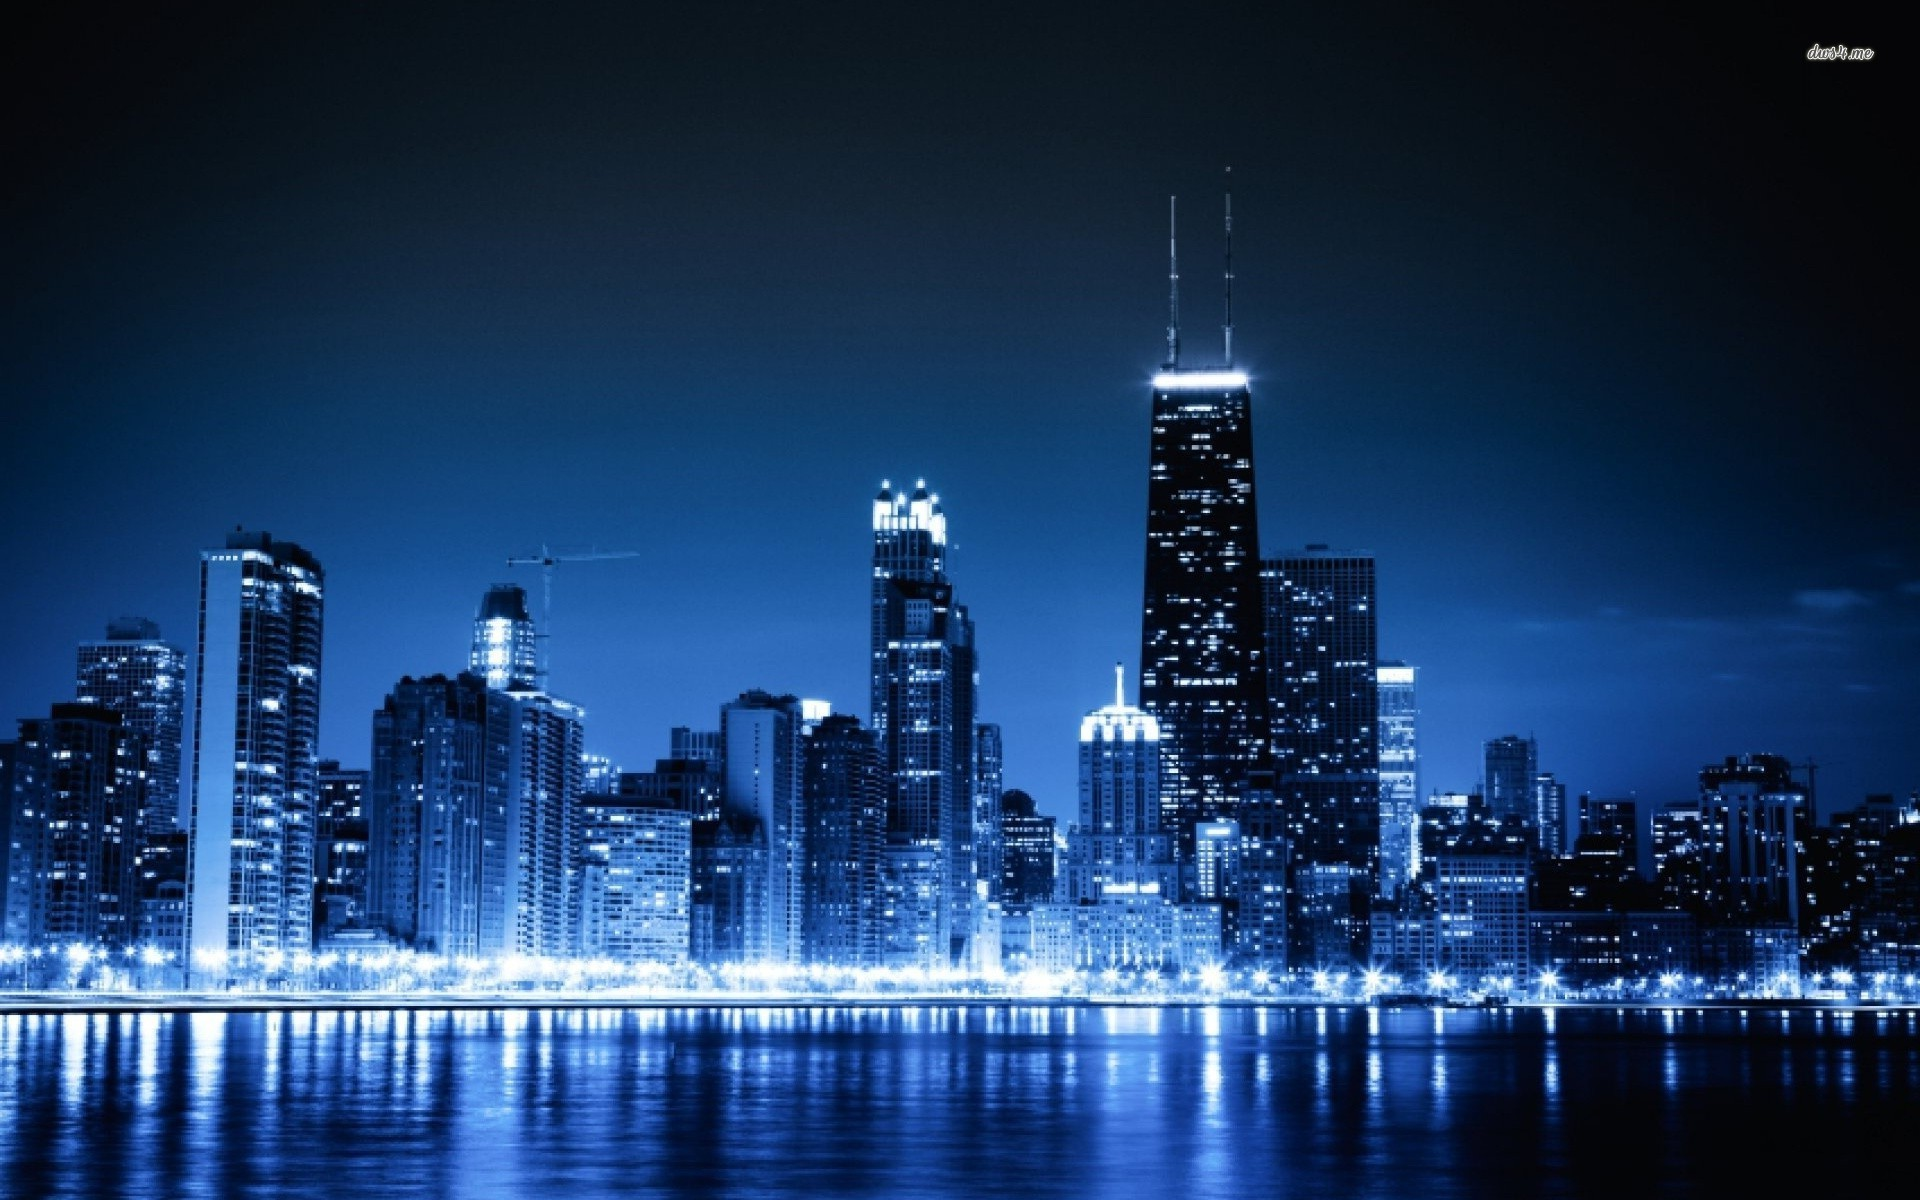 1920x1200 Glowing Chicago Skyline Wallpaper Wall Mural SelfAdhesive